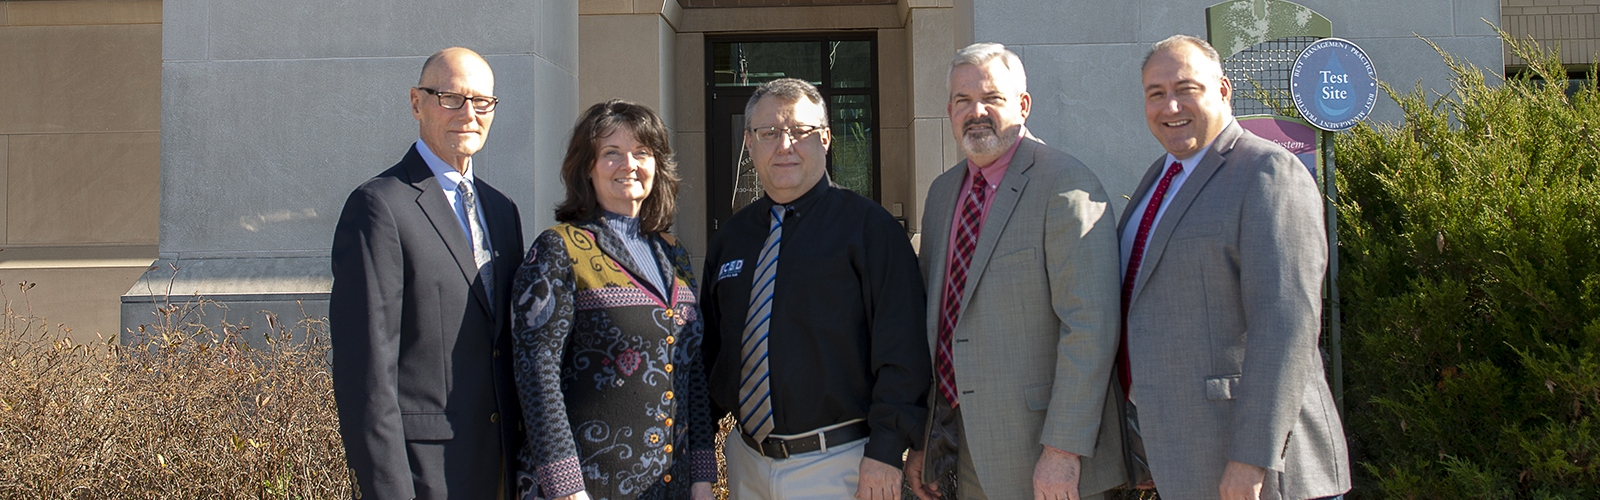 From left, Kenton County Schools' Bill Culbertson, Dr. Kim Banta, Dr. Francis O'Hara, Rob Haney and Dr. Henry Webb. <span class='image-credits'>Joe Simon</span>